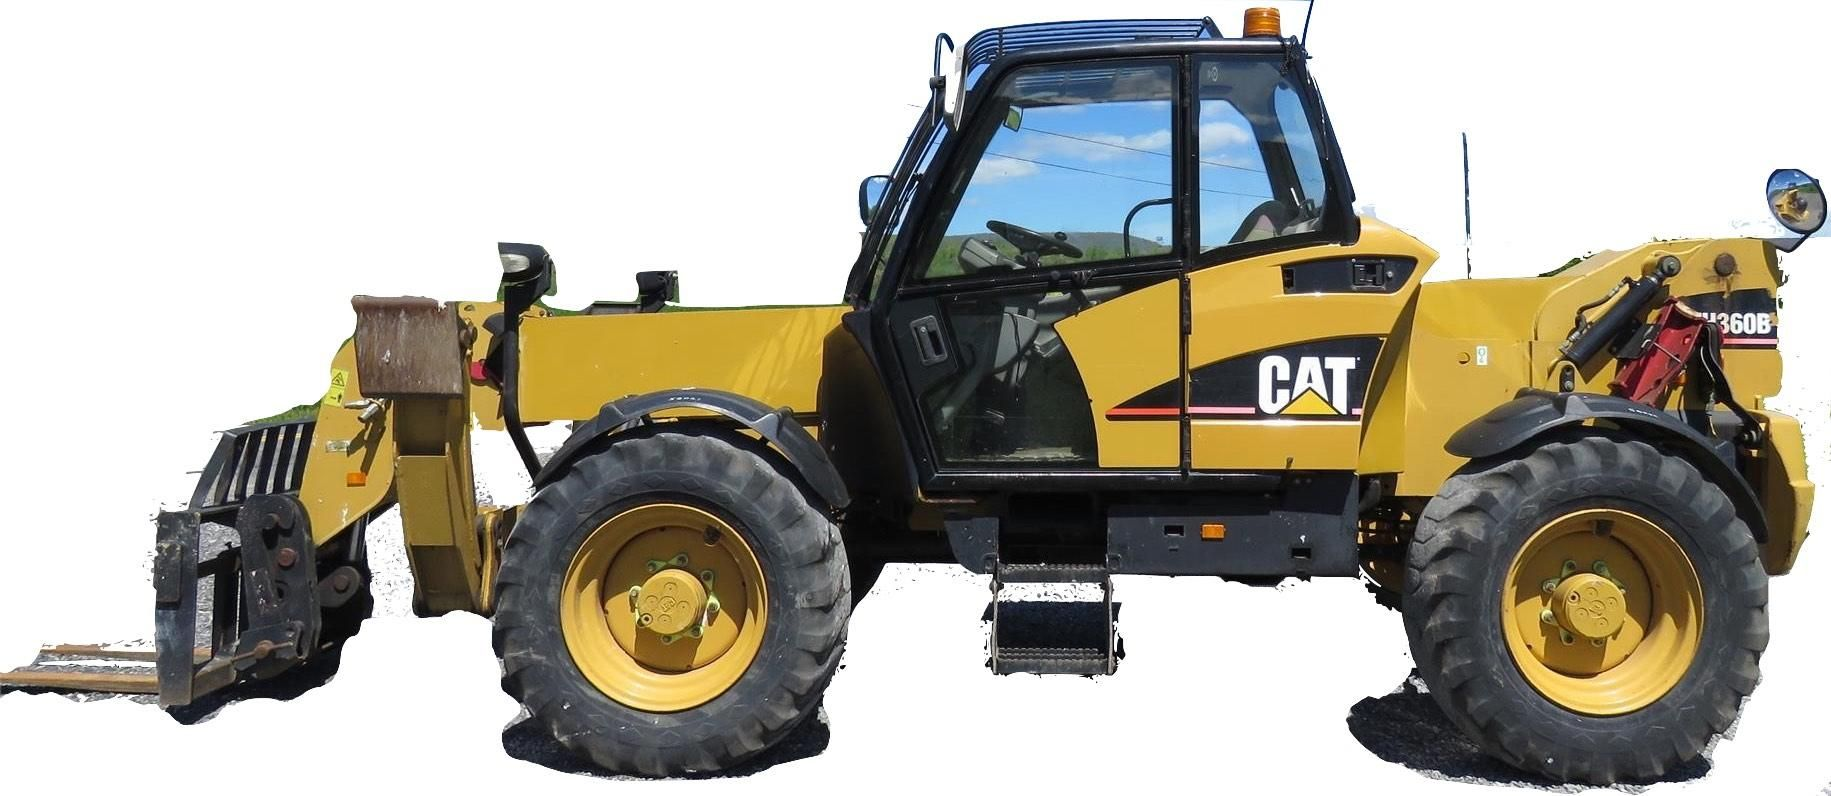 Caterpillar Cat Th220b Th330b Telehandler Operation And Maintenance Wiring Diagrams Manual